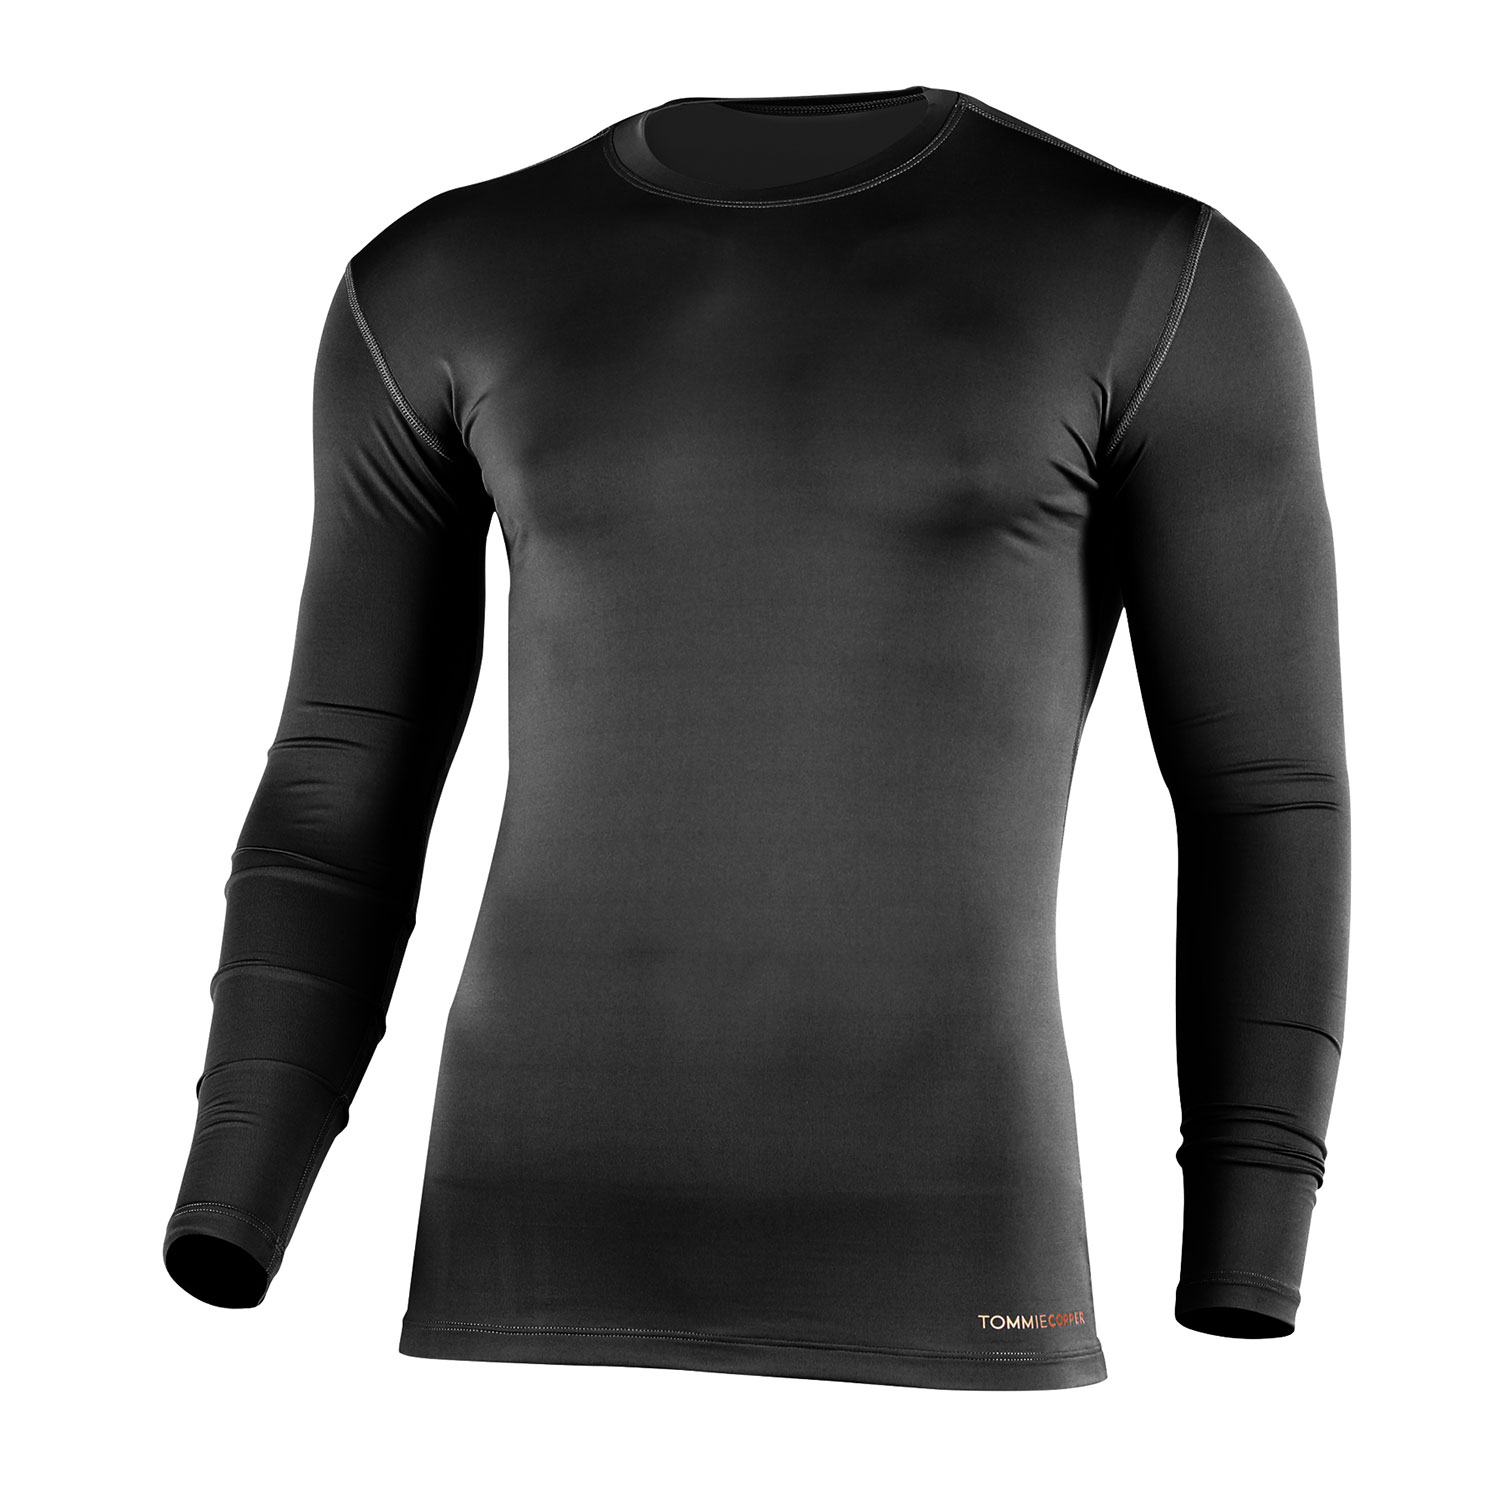 Tommie Copper Men's Long Sleeve Compression Shirt